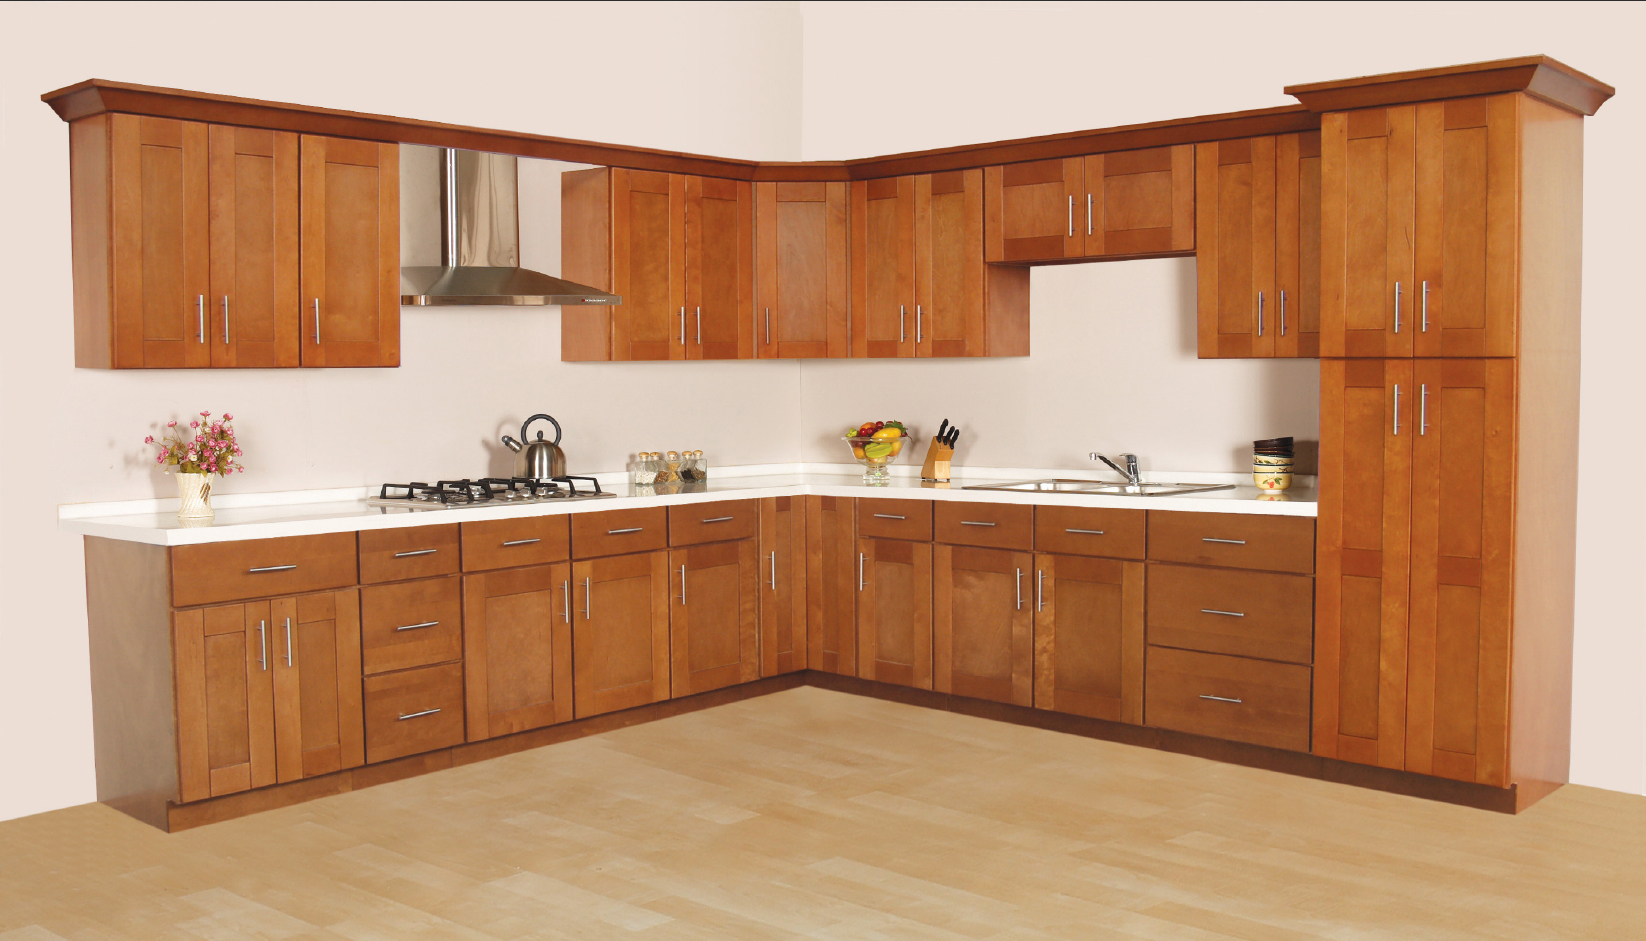 Menards kitchen cabinet price and details home and for Kitchen cabinets rta